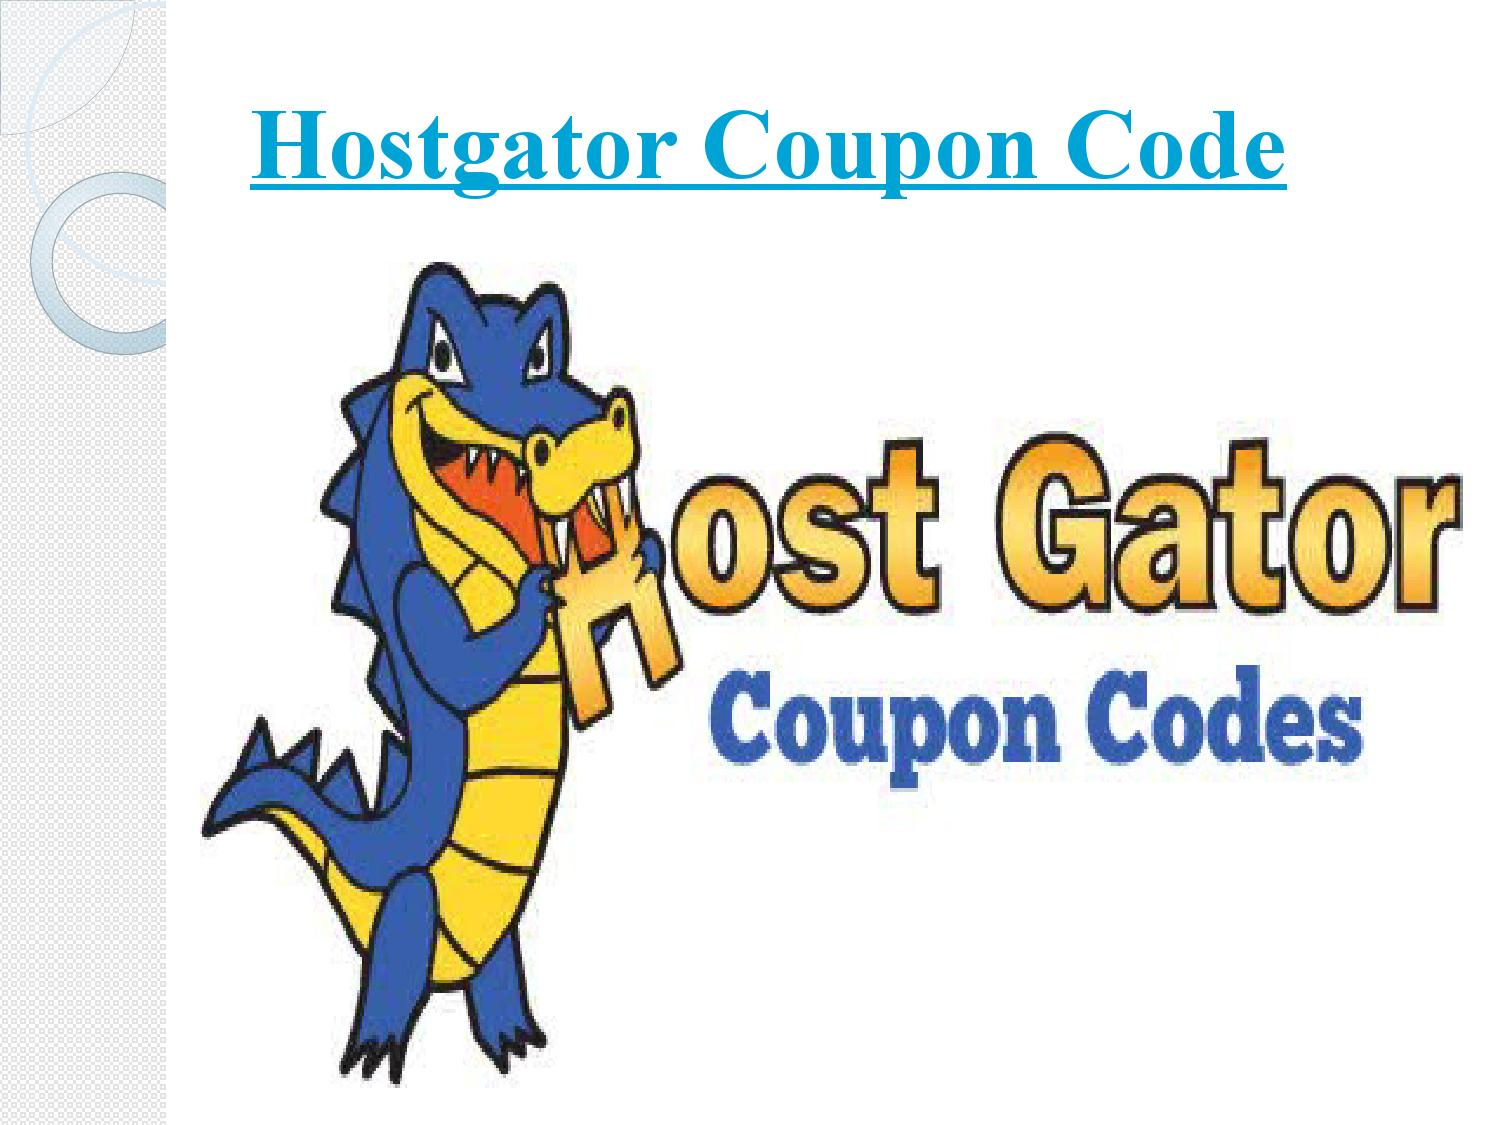 Corda roys coupon code